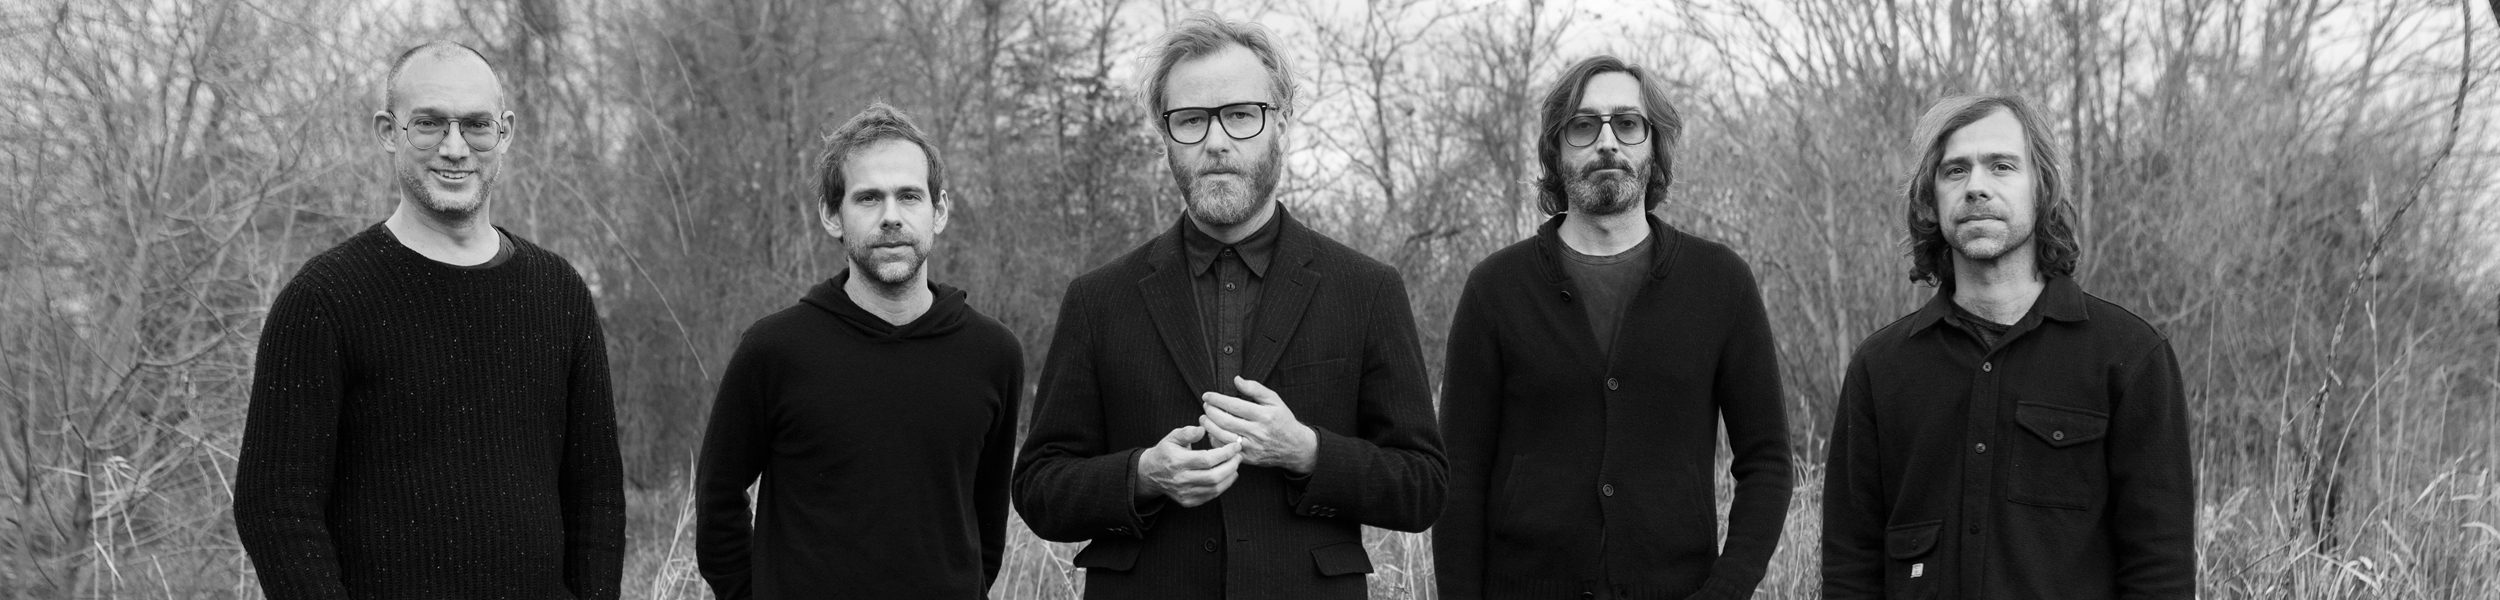 The National - The National Announce European Tour